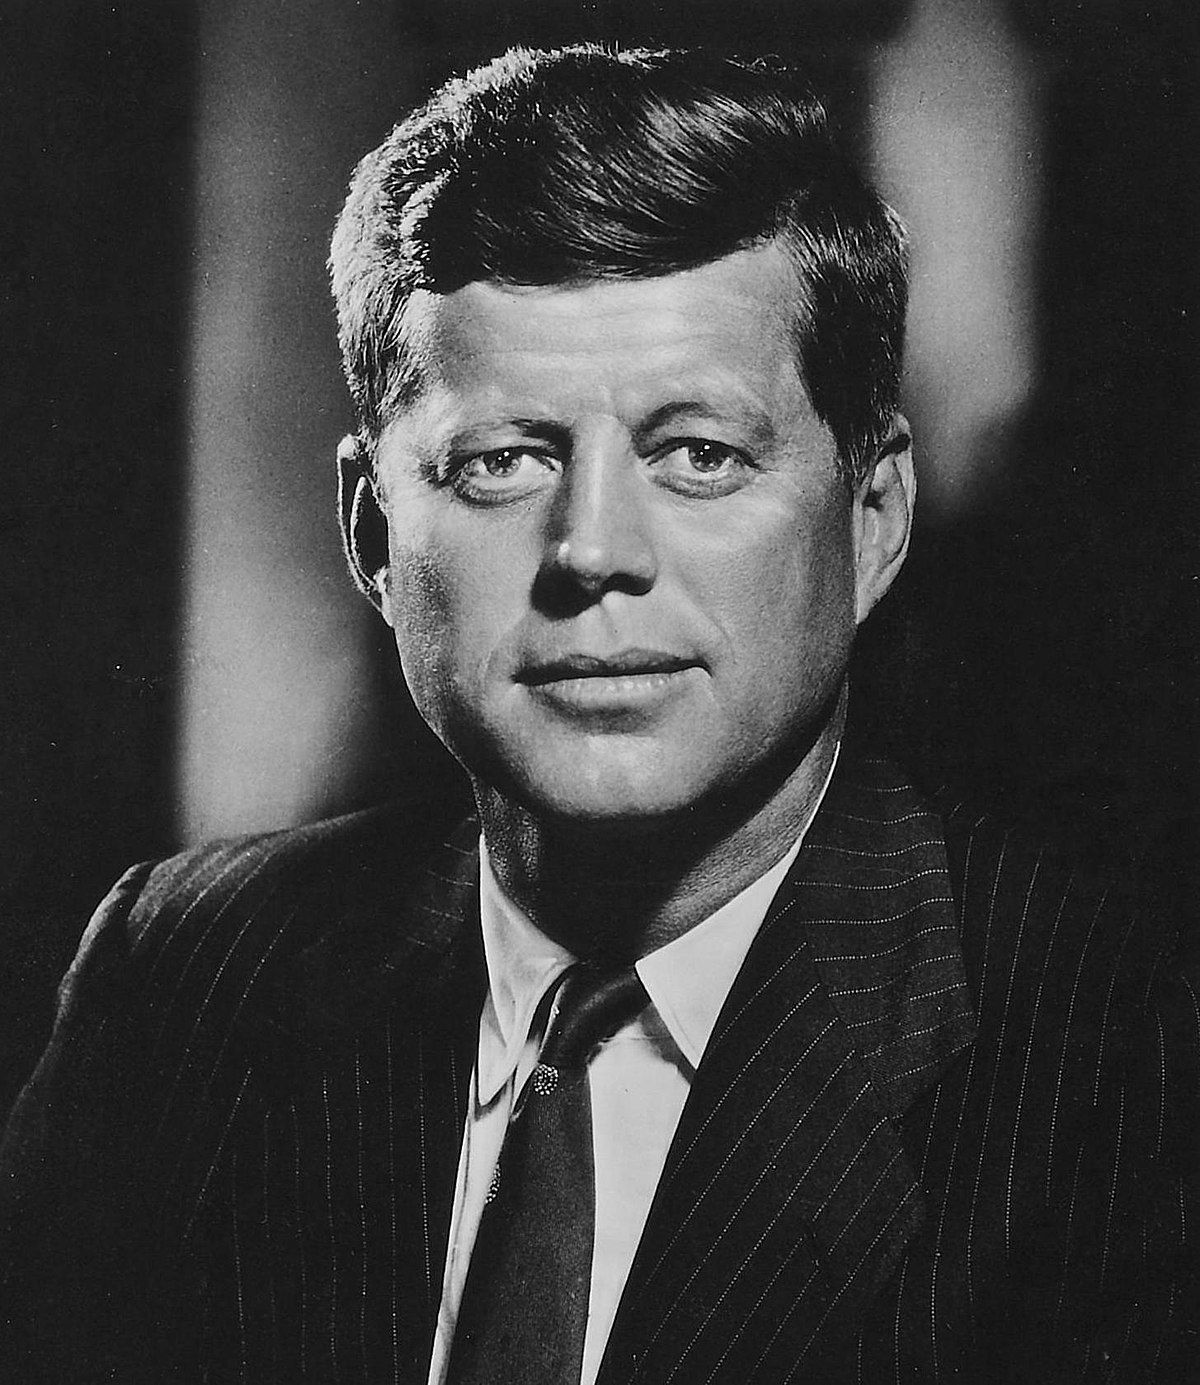 jfk was a great president jfk: great president john f kennedy is arguably the most iconic president of  all time however, his actual time in office is overshadowed by his assassination .